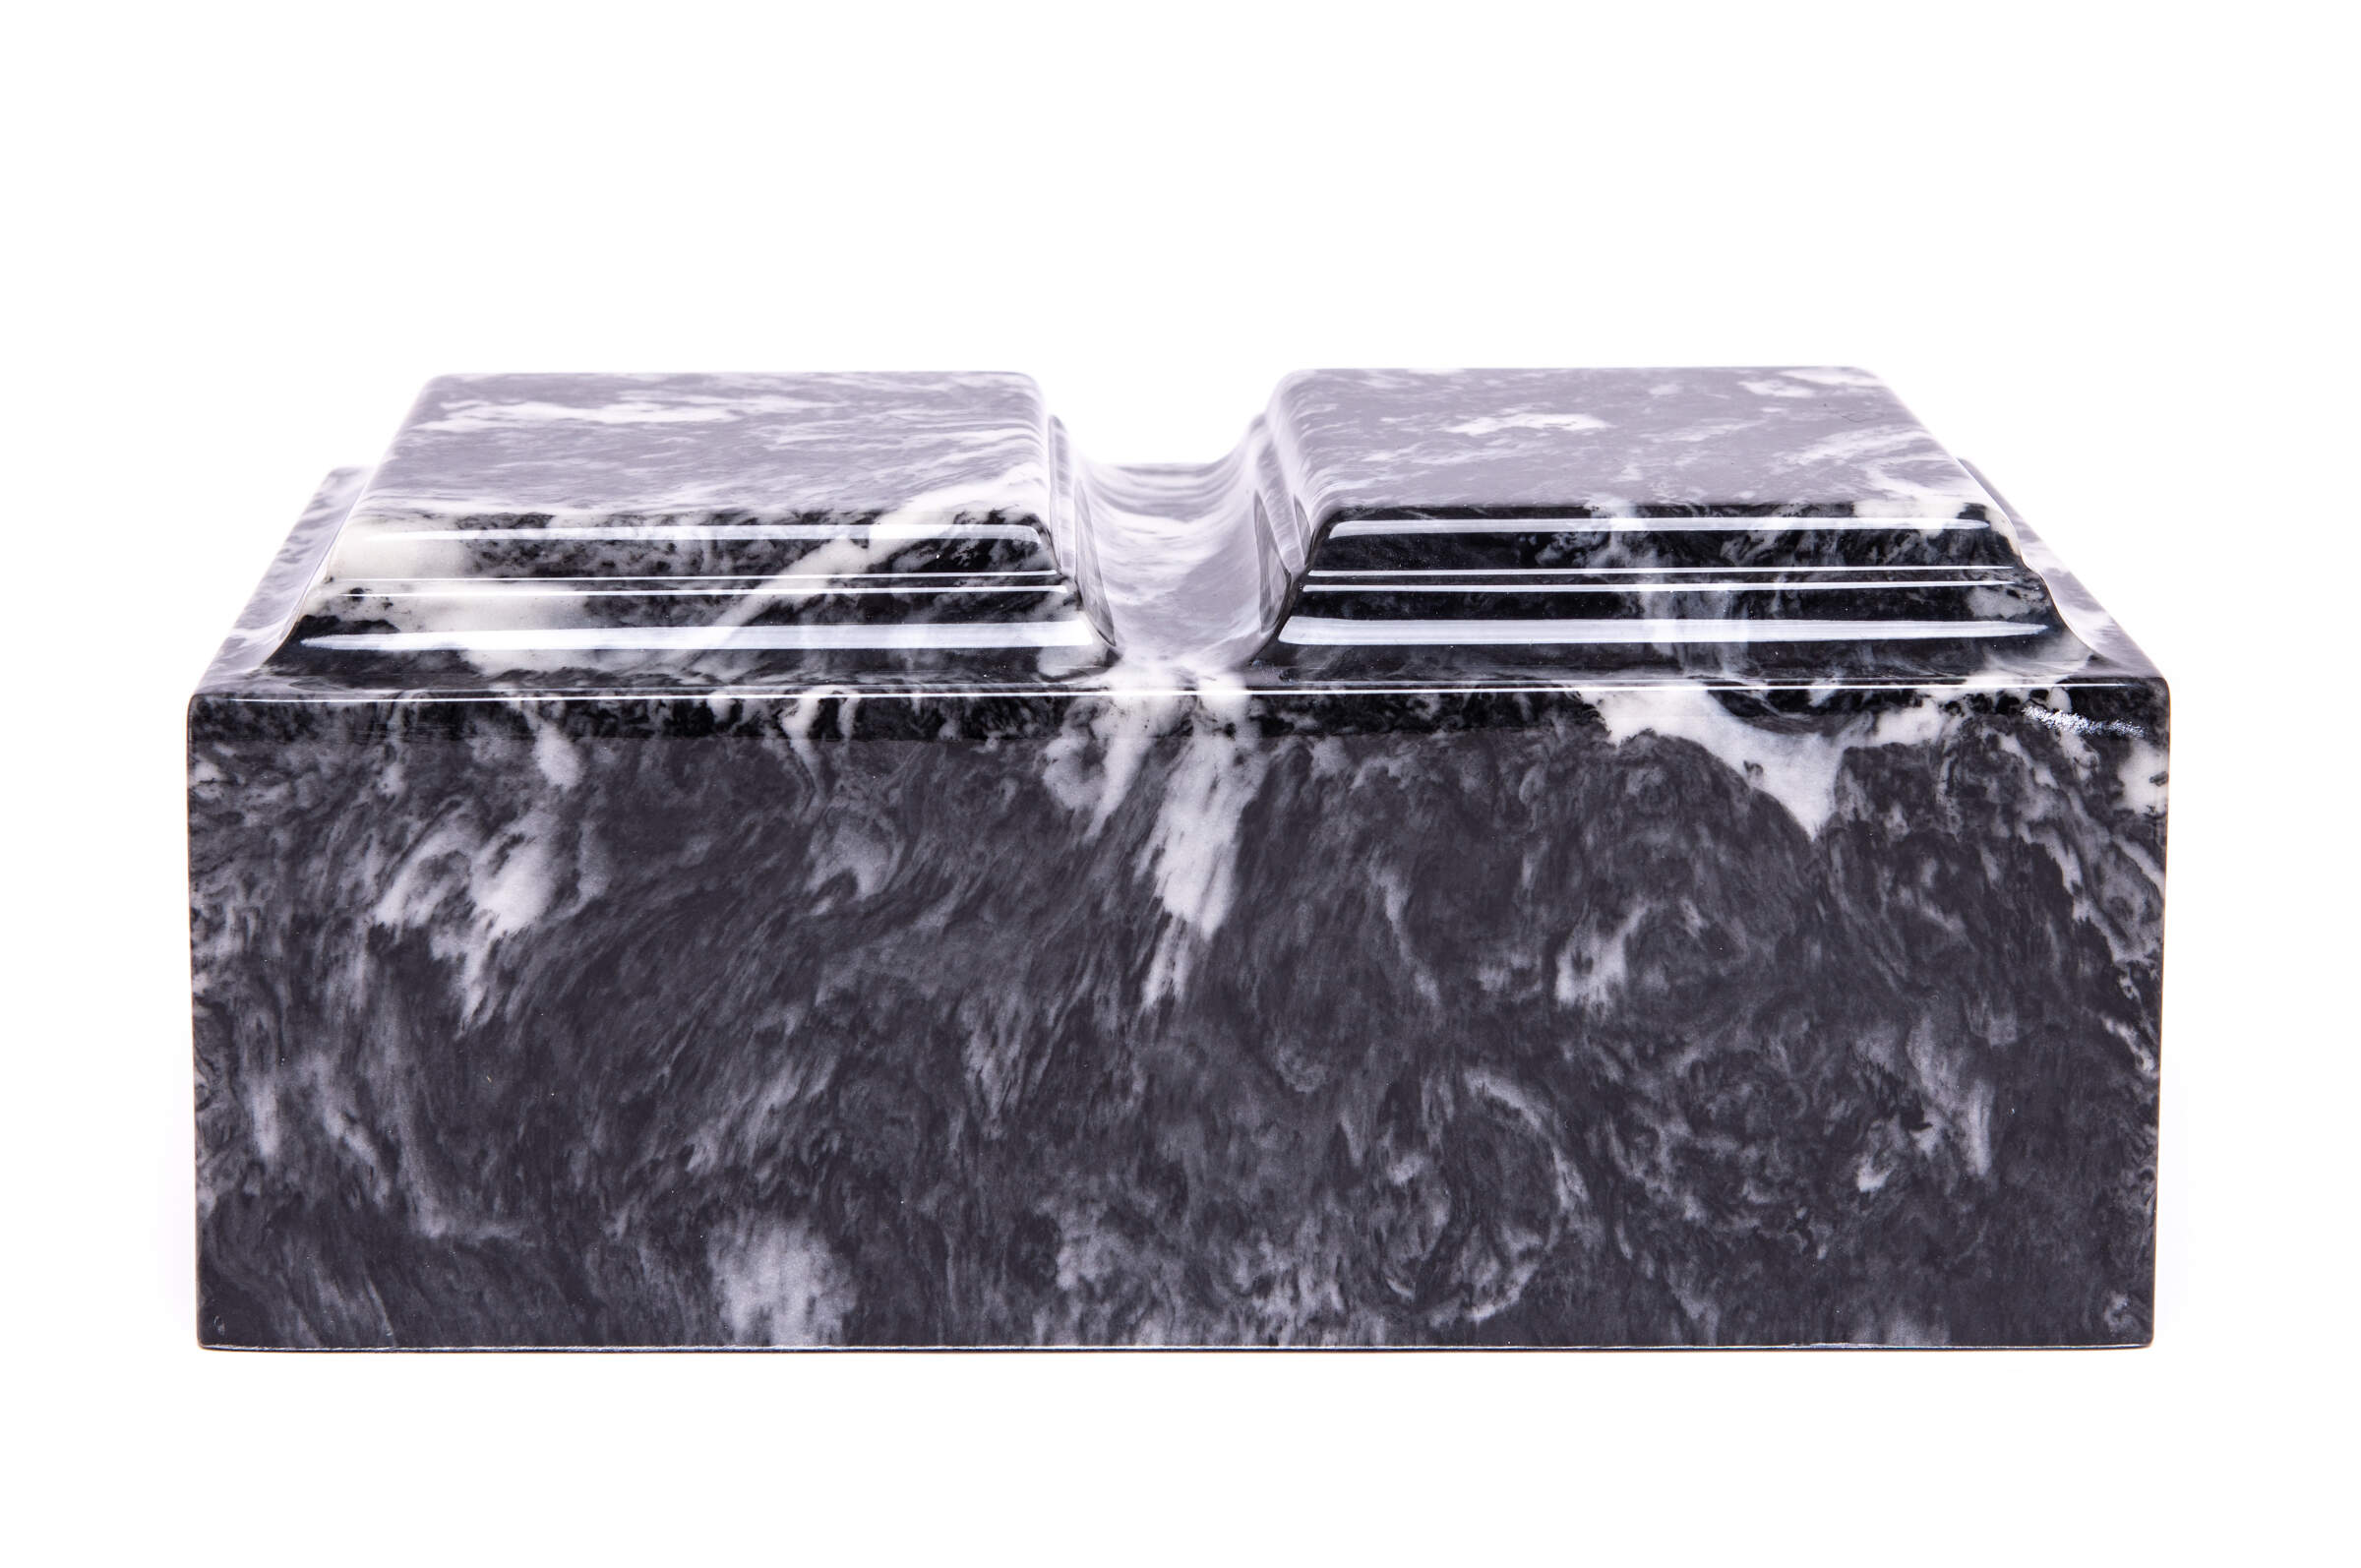 Dual Cultured Marble